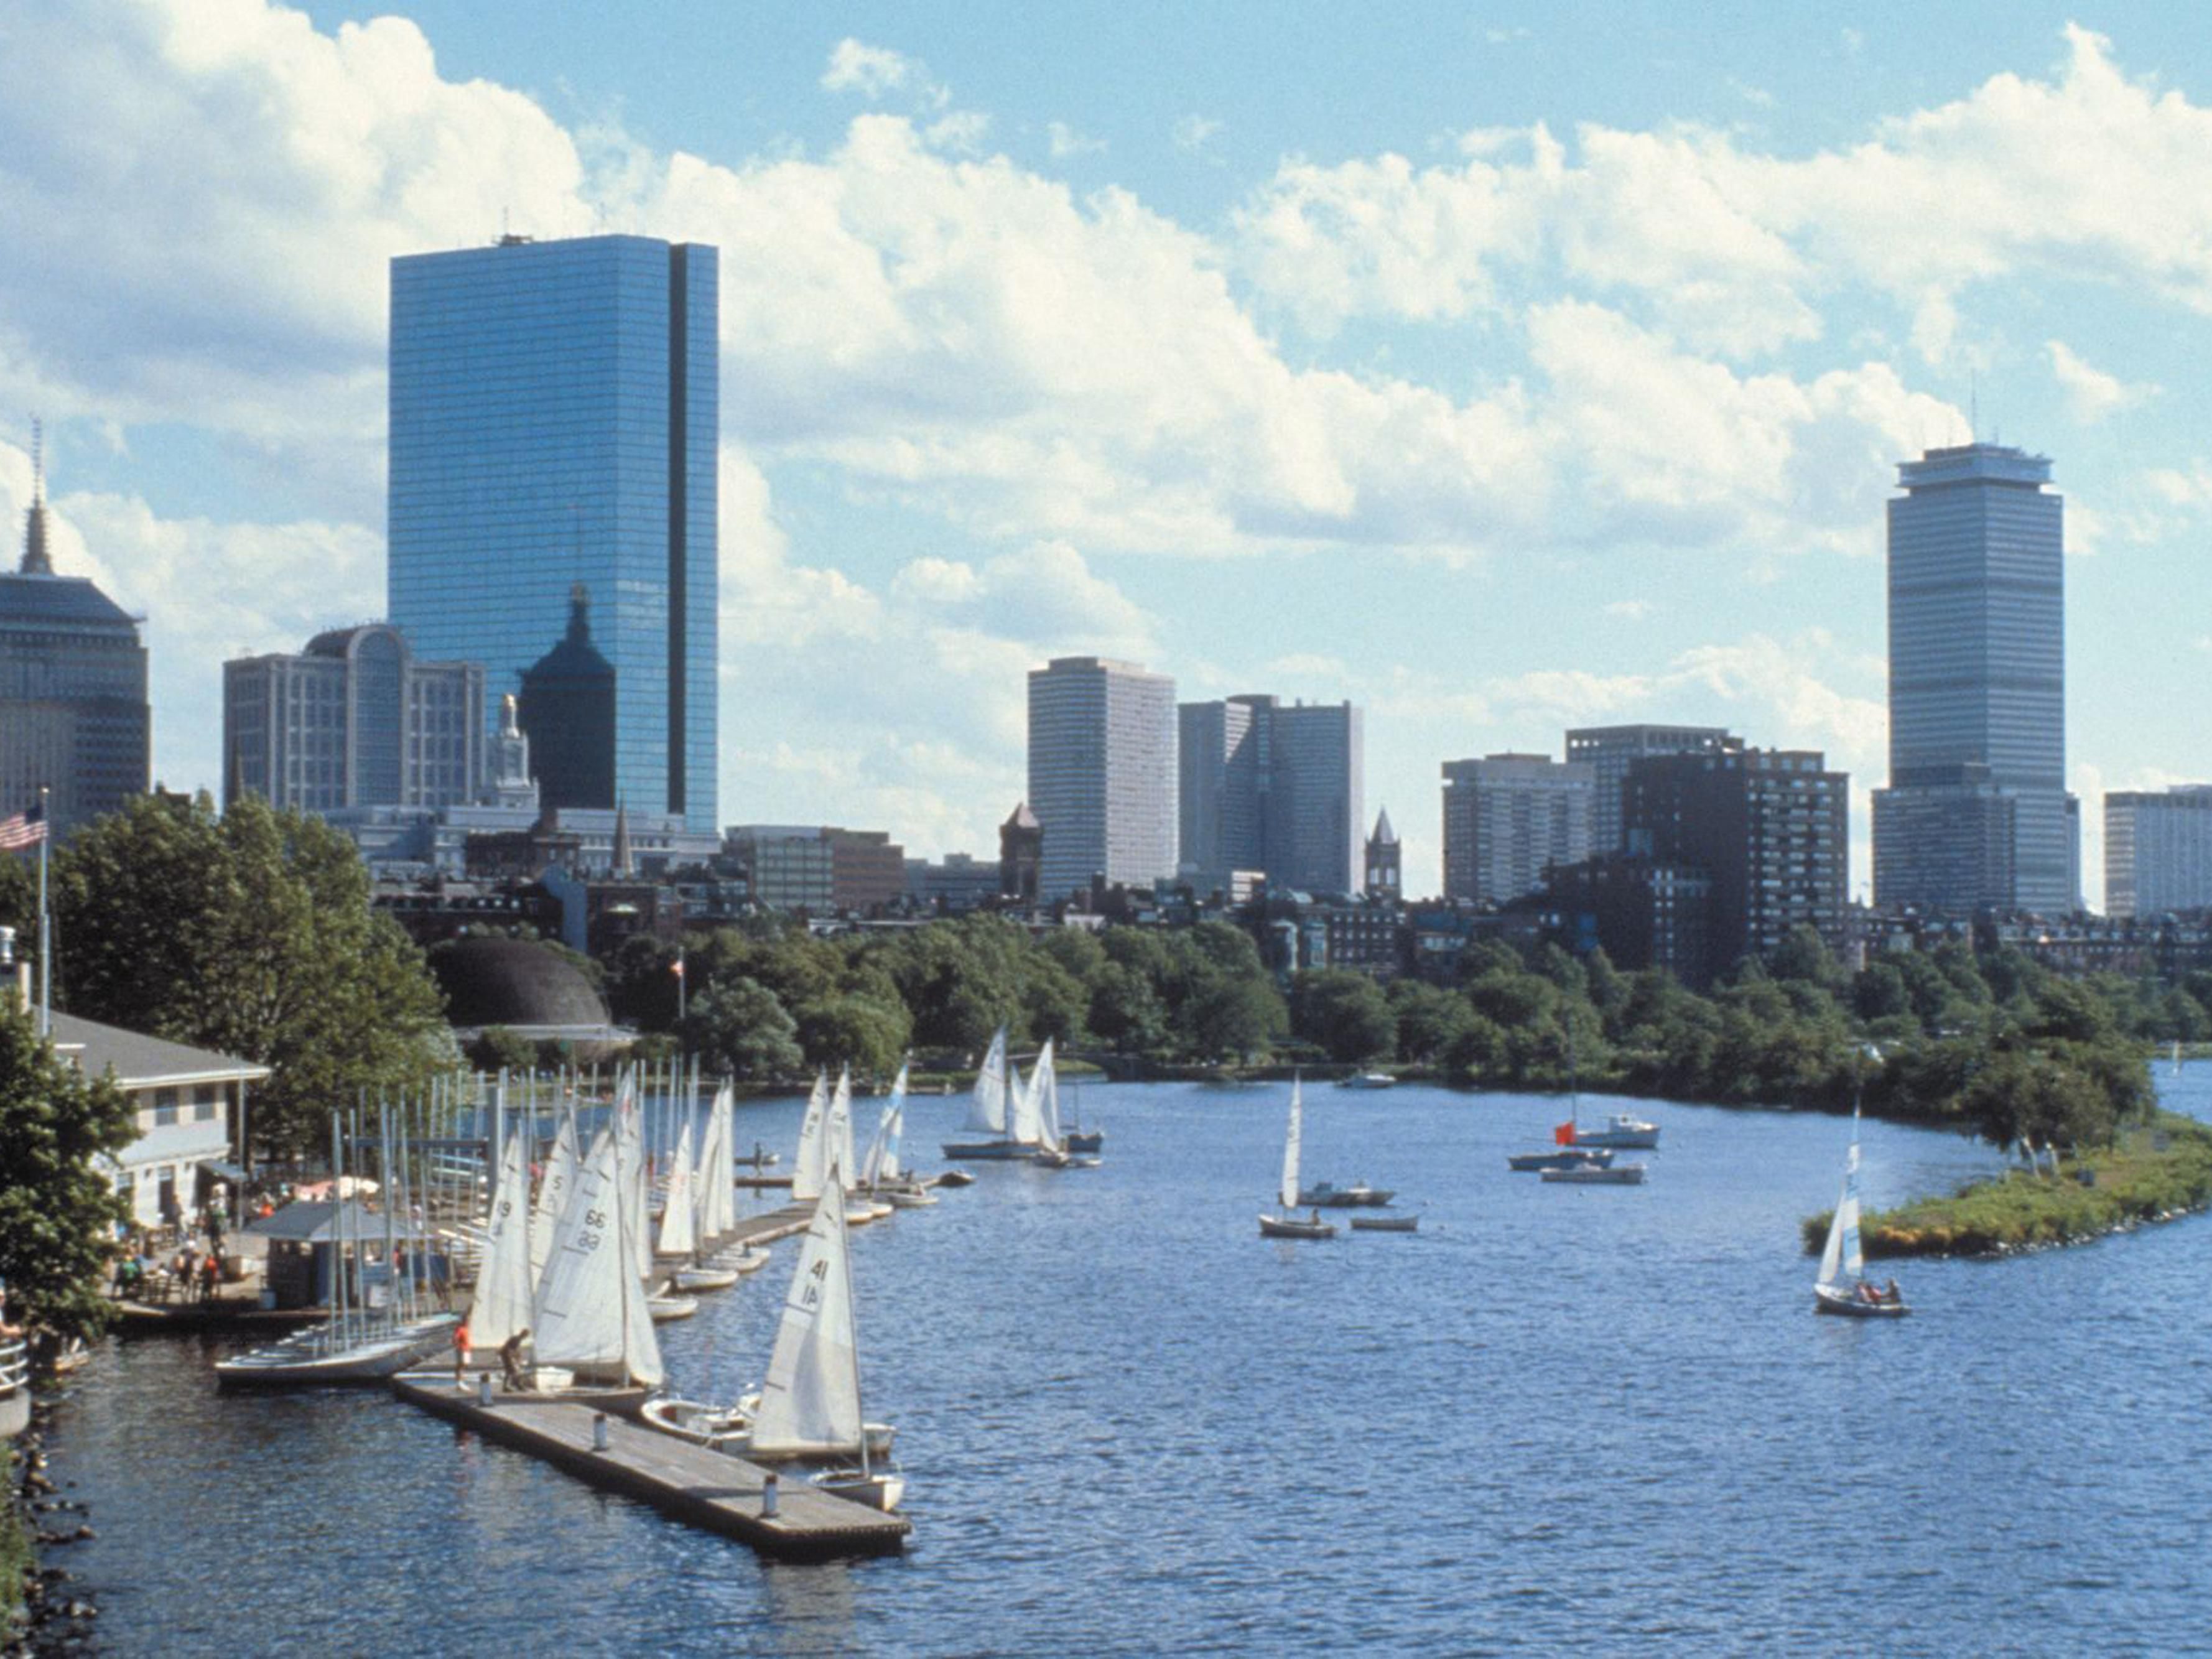 The beautiful Charles River is just minutes from our hotel.